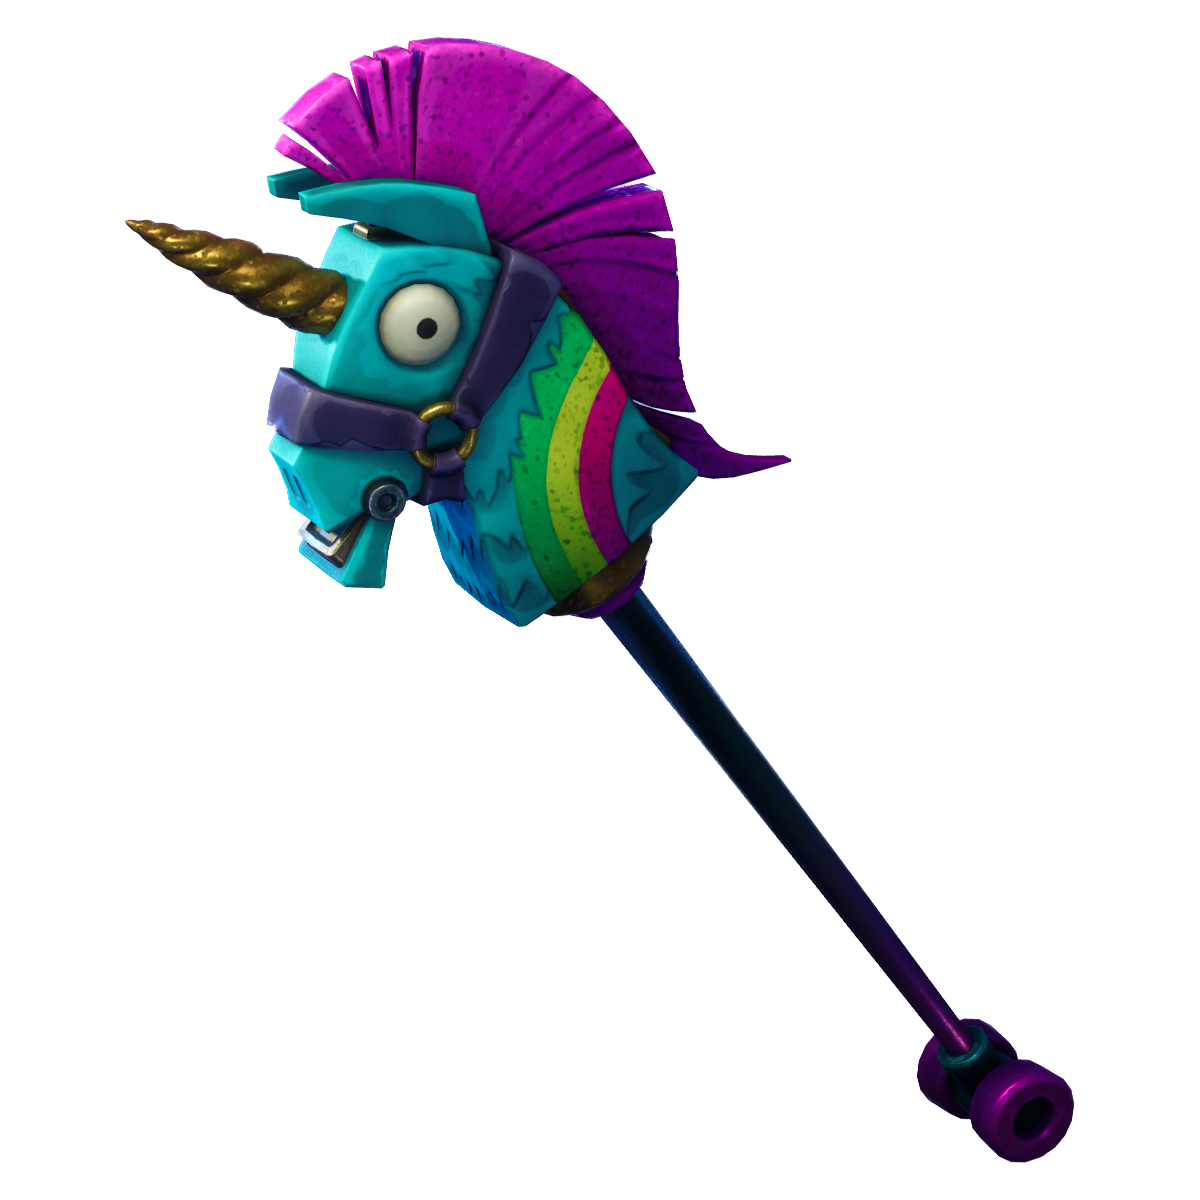 Pickaxe transparent toy. What s everyone favorite